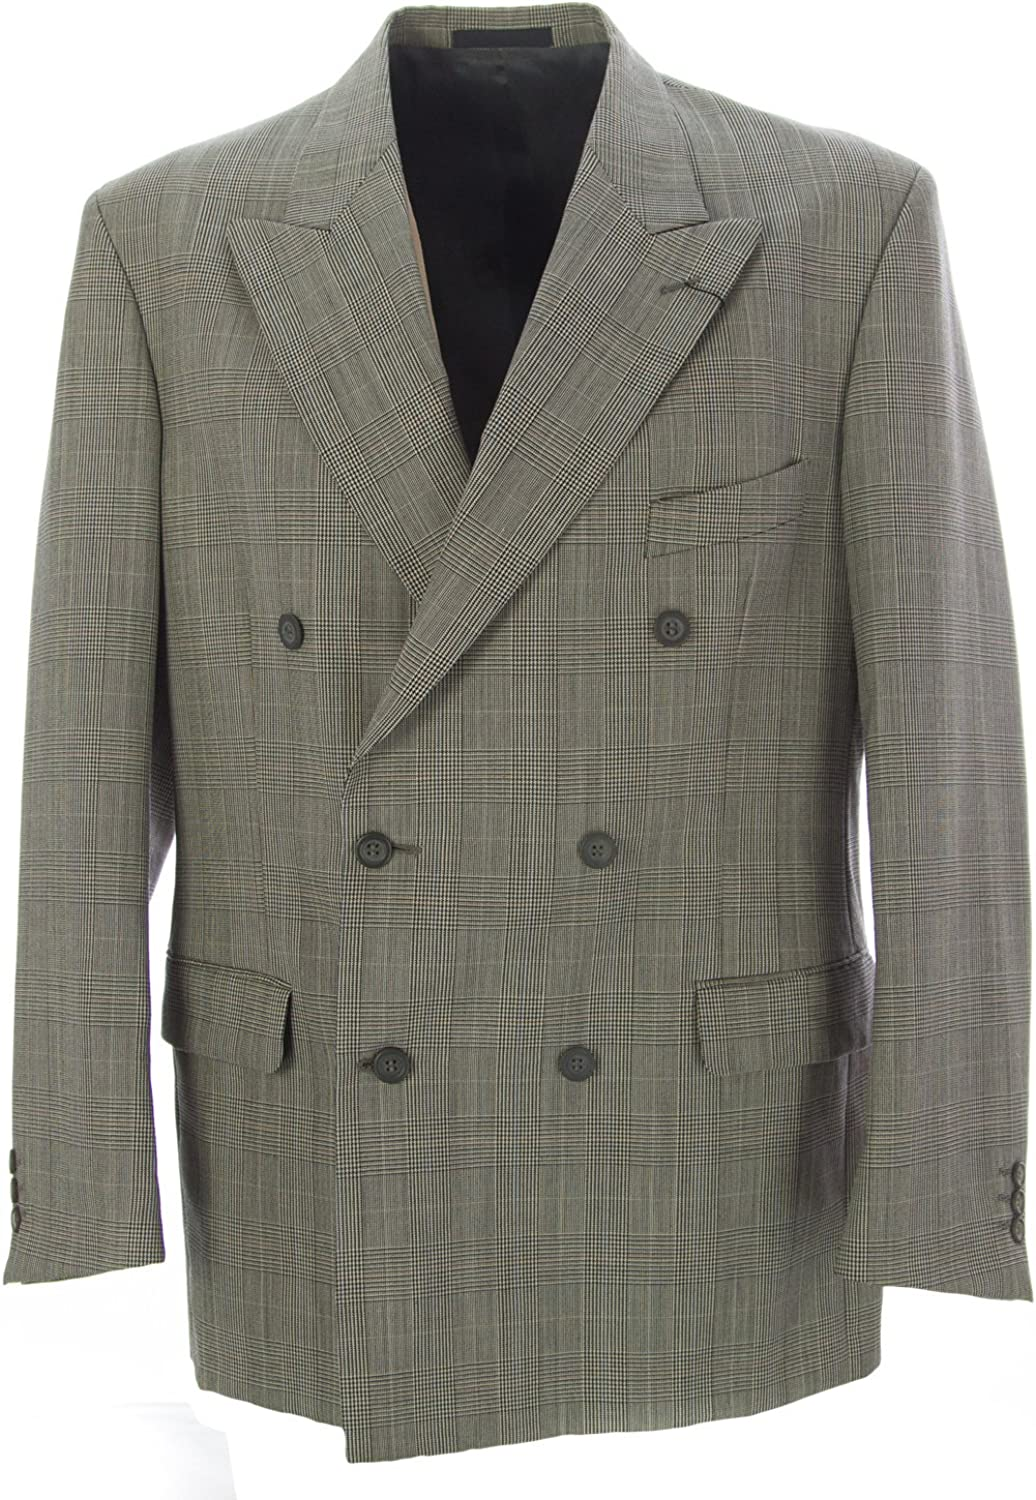 Pierre Cardin Men\'s Tweed Suit Blazer 40 R Grey/Multi 81LdtJuksxLUL1500_